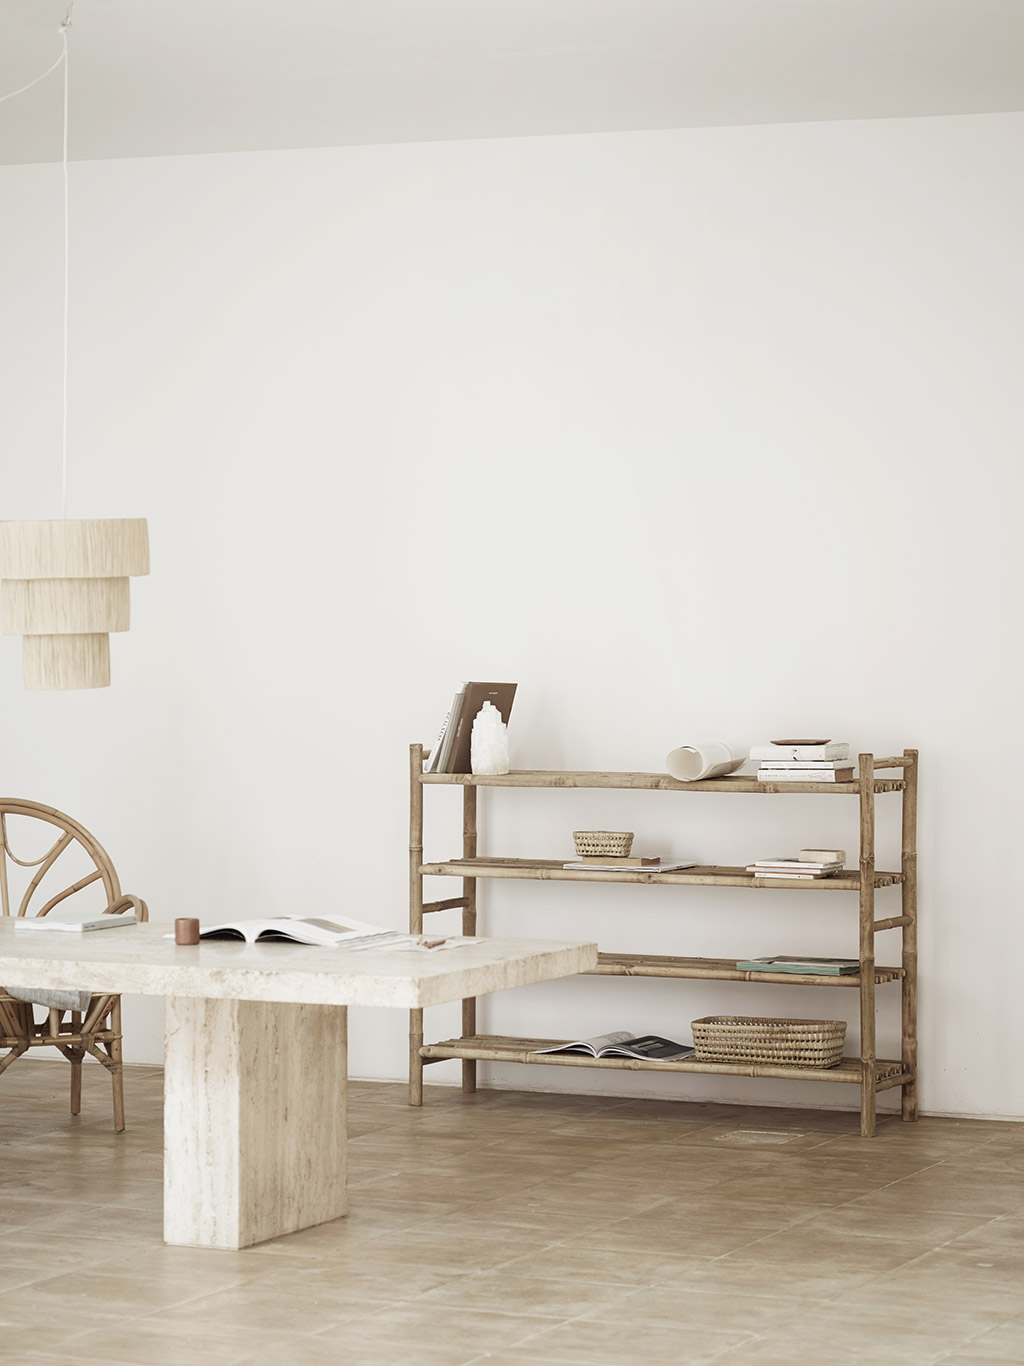 TinekHome Slow Collection | Stek Magazine | Scandinavische woonaccessoires